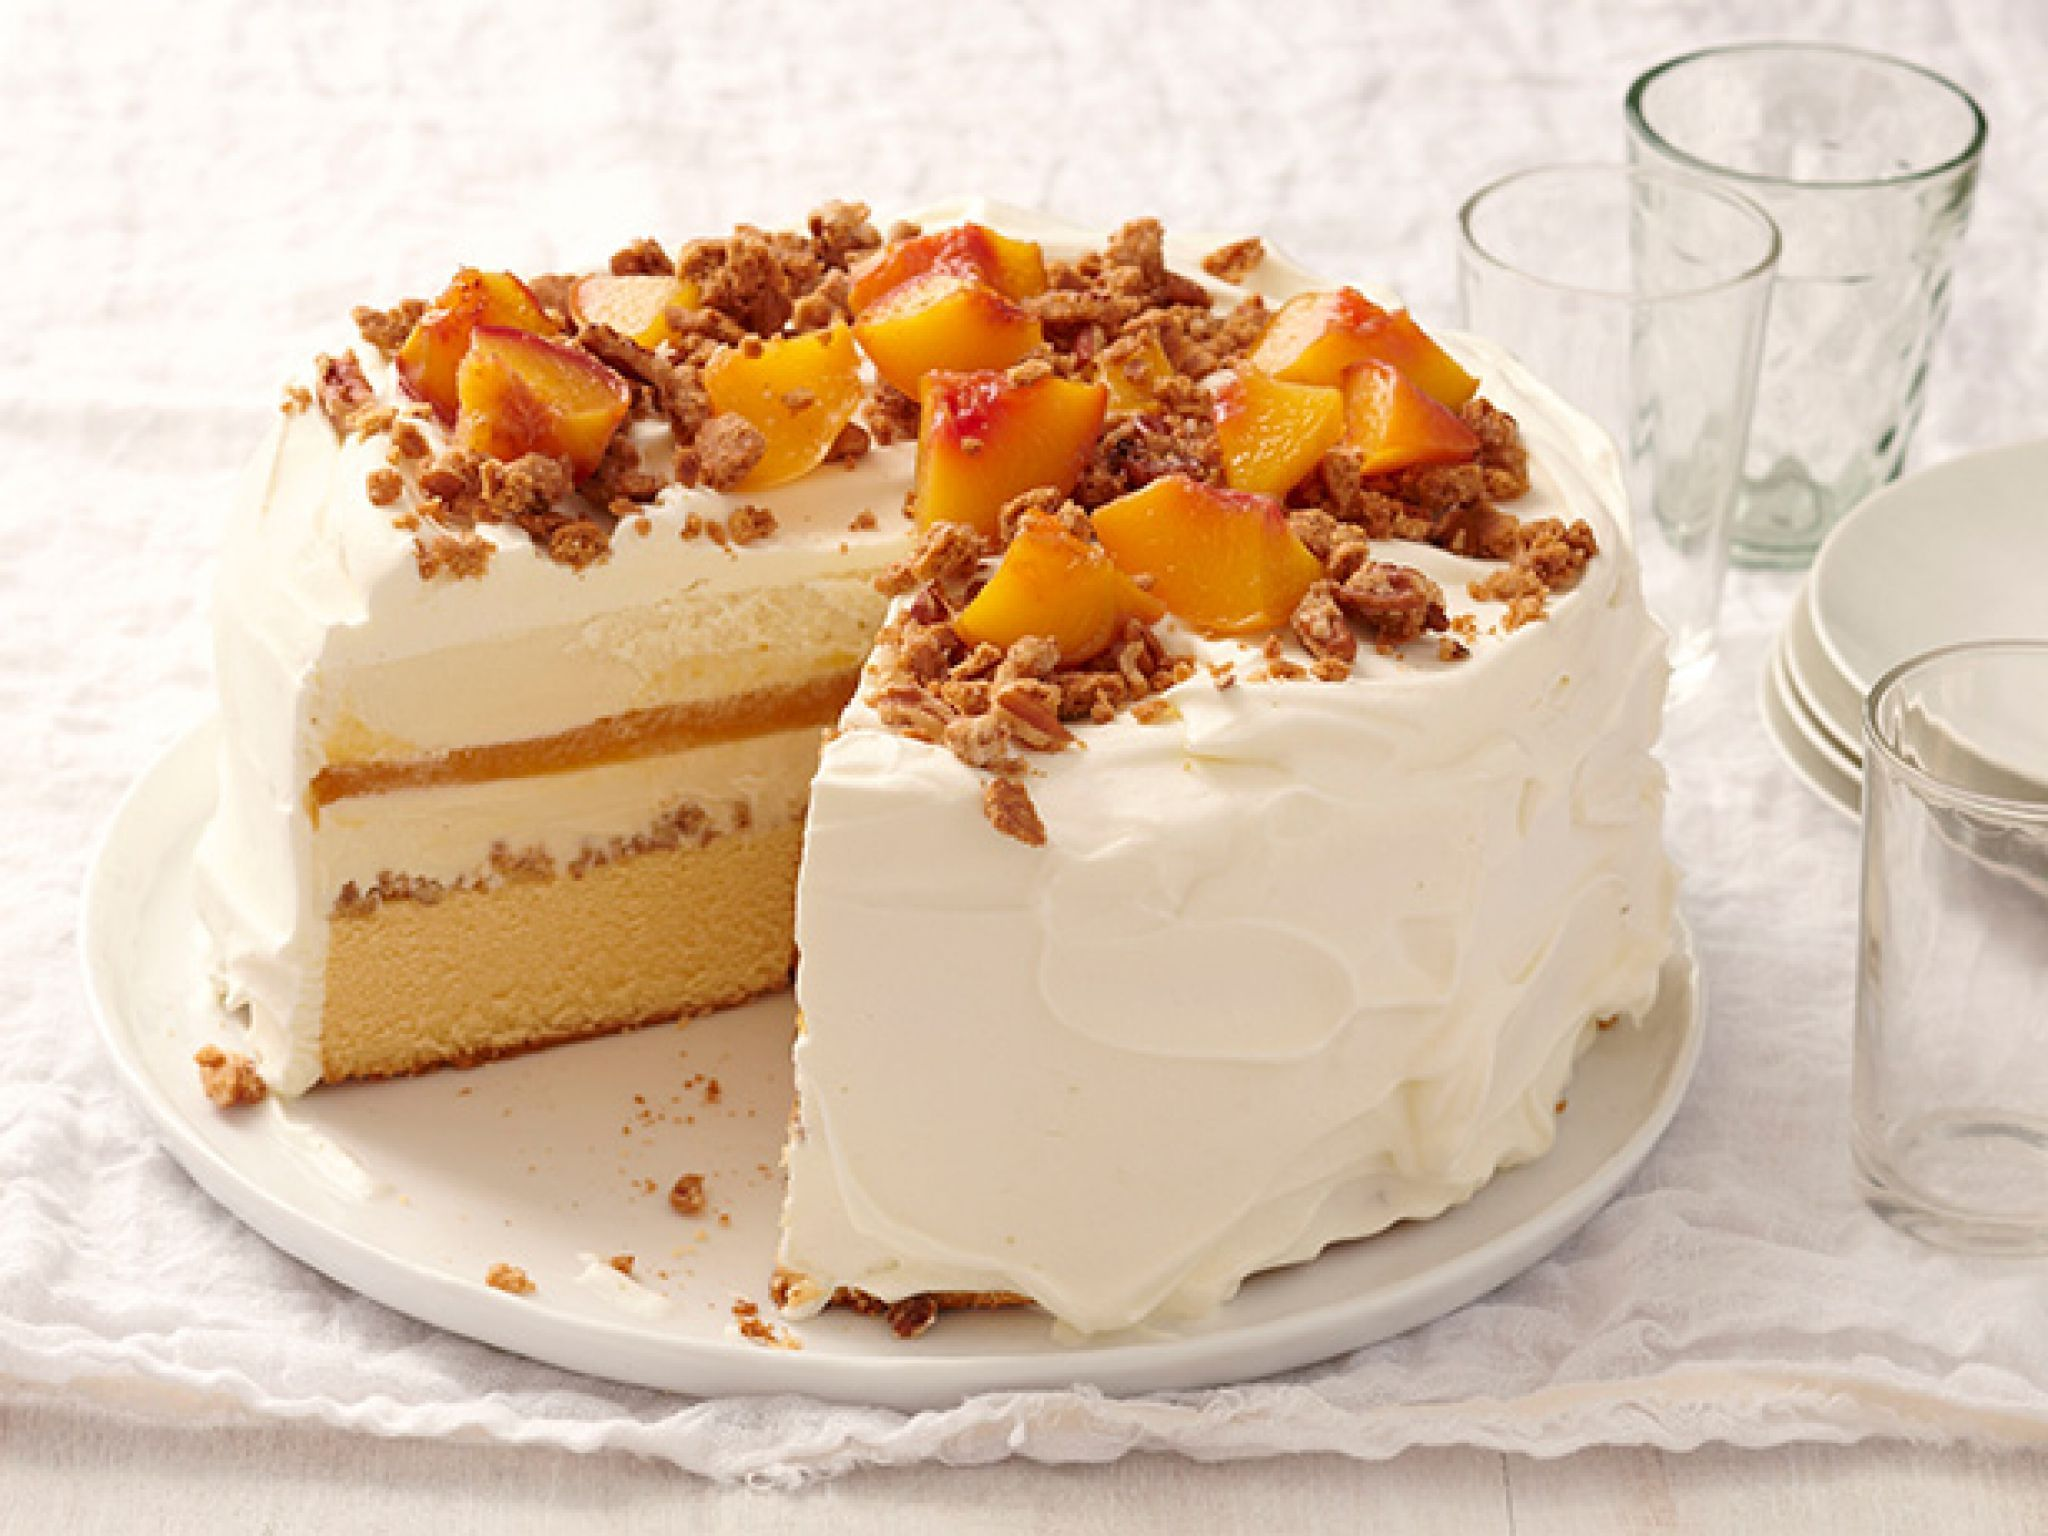 Best Summer Fruit Desserts #peachcobblerpoundcake Peach Cobbler Ice Cream Cake : Layer ice cream with freshly made peach puree, pound cake and pecans for a frozen dessert that tastes just like the classic summer cobbler. #peachcobblerpoundcake